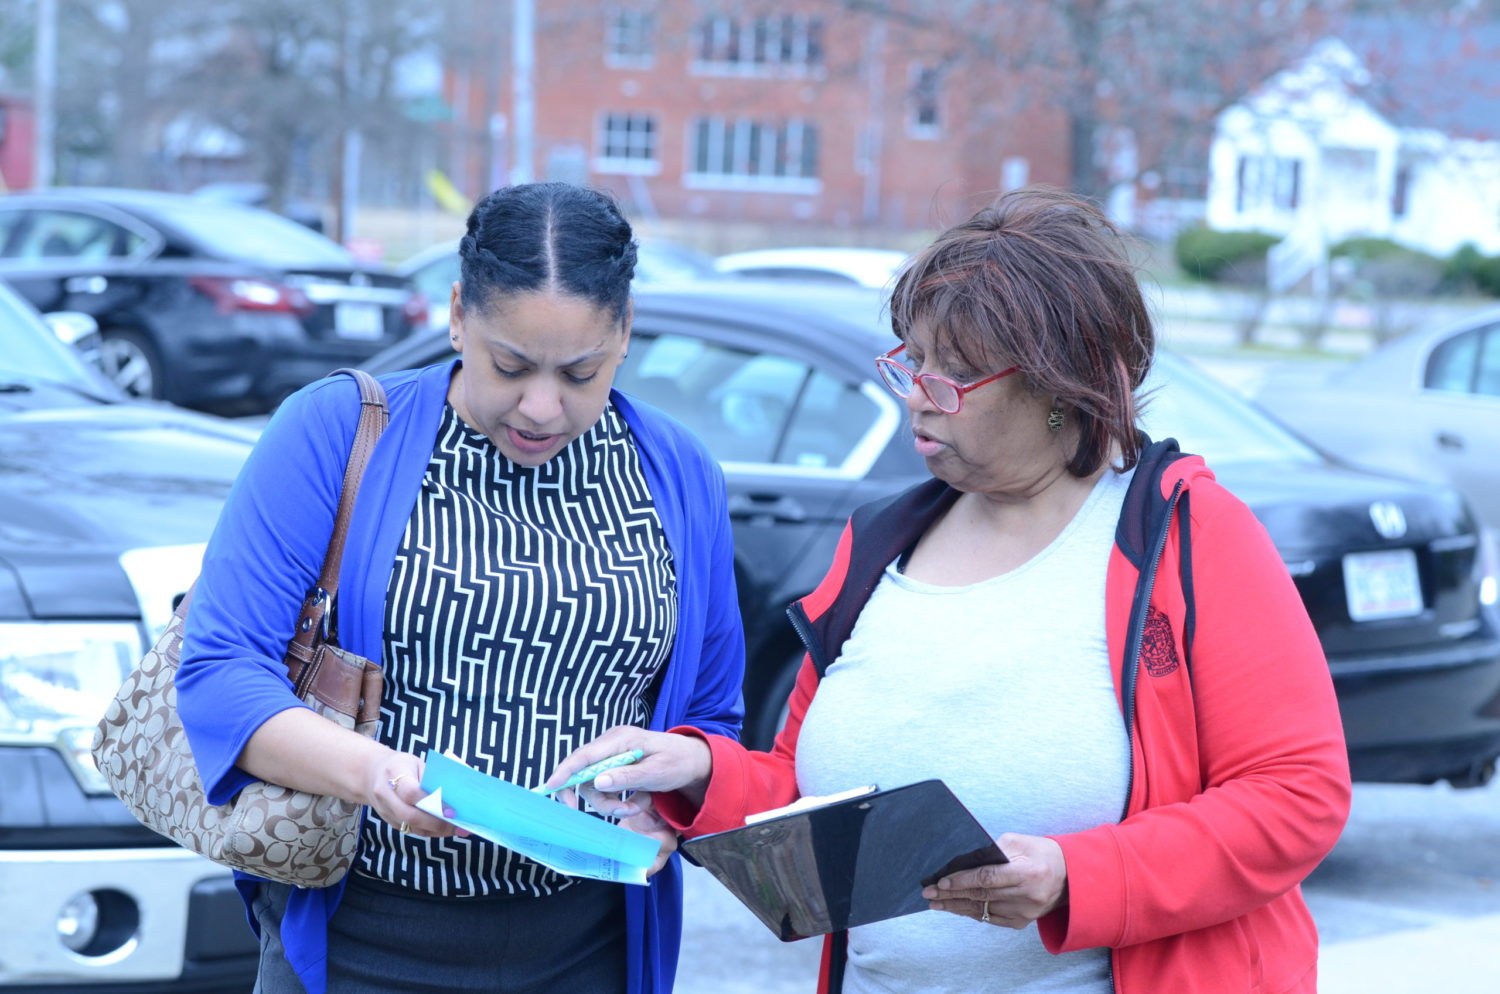 Carolyn Seward, right, representing the Democratic Women of Nash County, greets 2020 primary election voter Cassandra Williams as she arrives outside the Braswell Memorial Library polling place in Rocky Mount on March 3, 2020. Calvin Adkins / Carolina Public Press